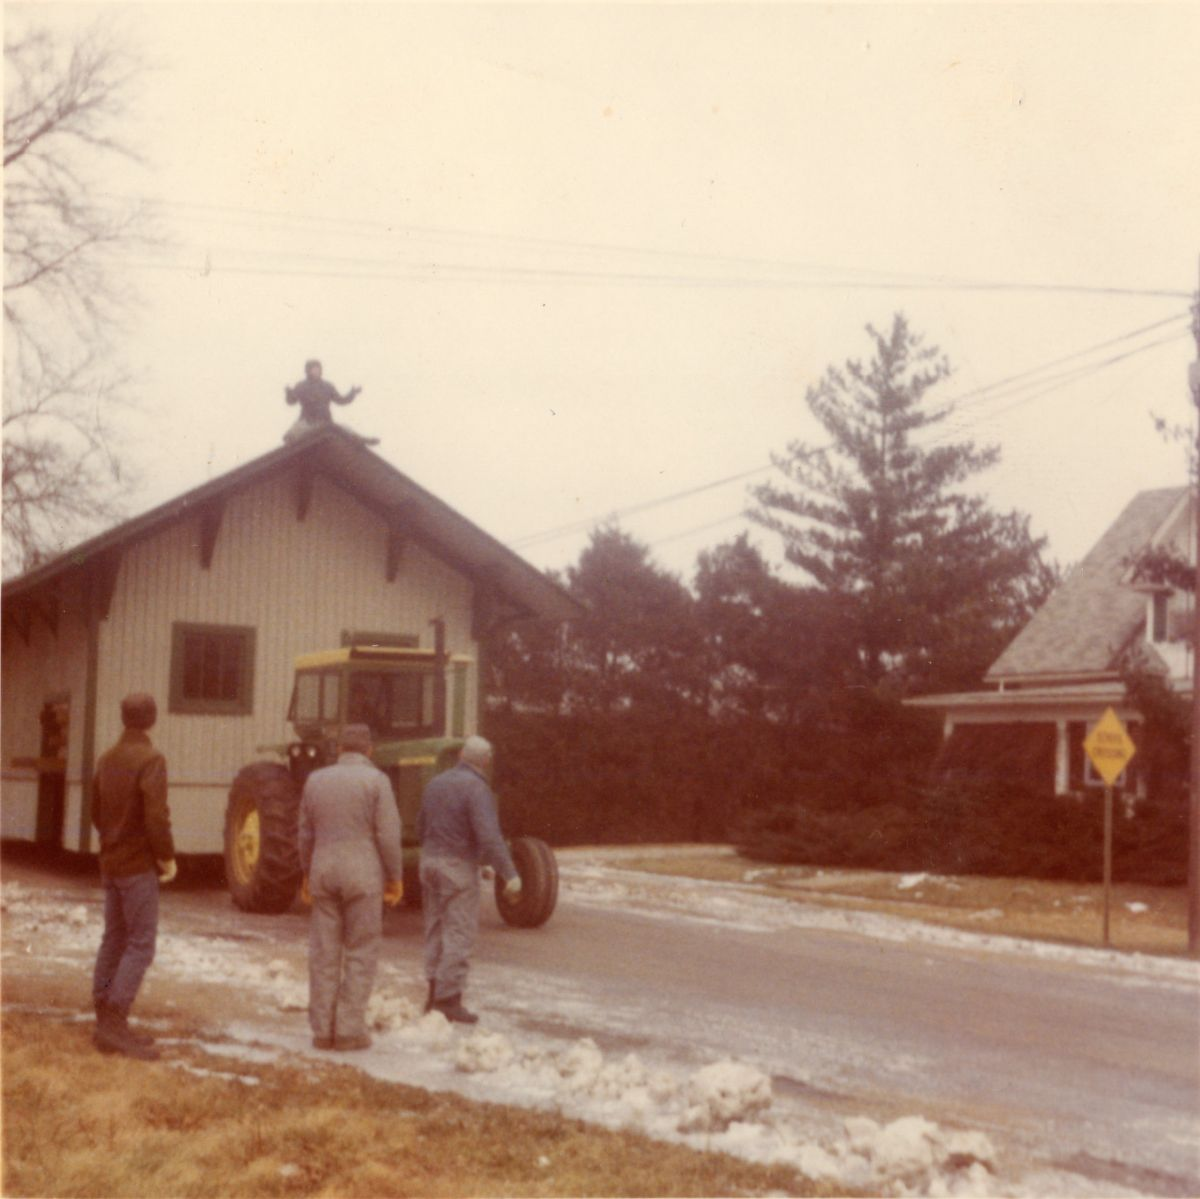 Moving the McLean Depot to its current location across from the Dixie on Hwy 136, 1971. Here it once housed antique stores and now boasts a Train Shop, where owner Tom Ludlam shares this piece of McLean history with travelers from all over the world.